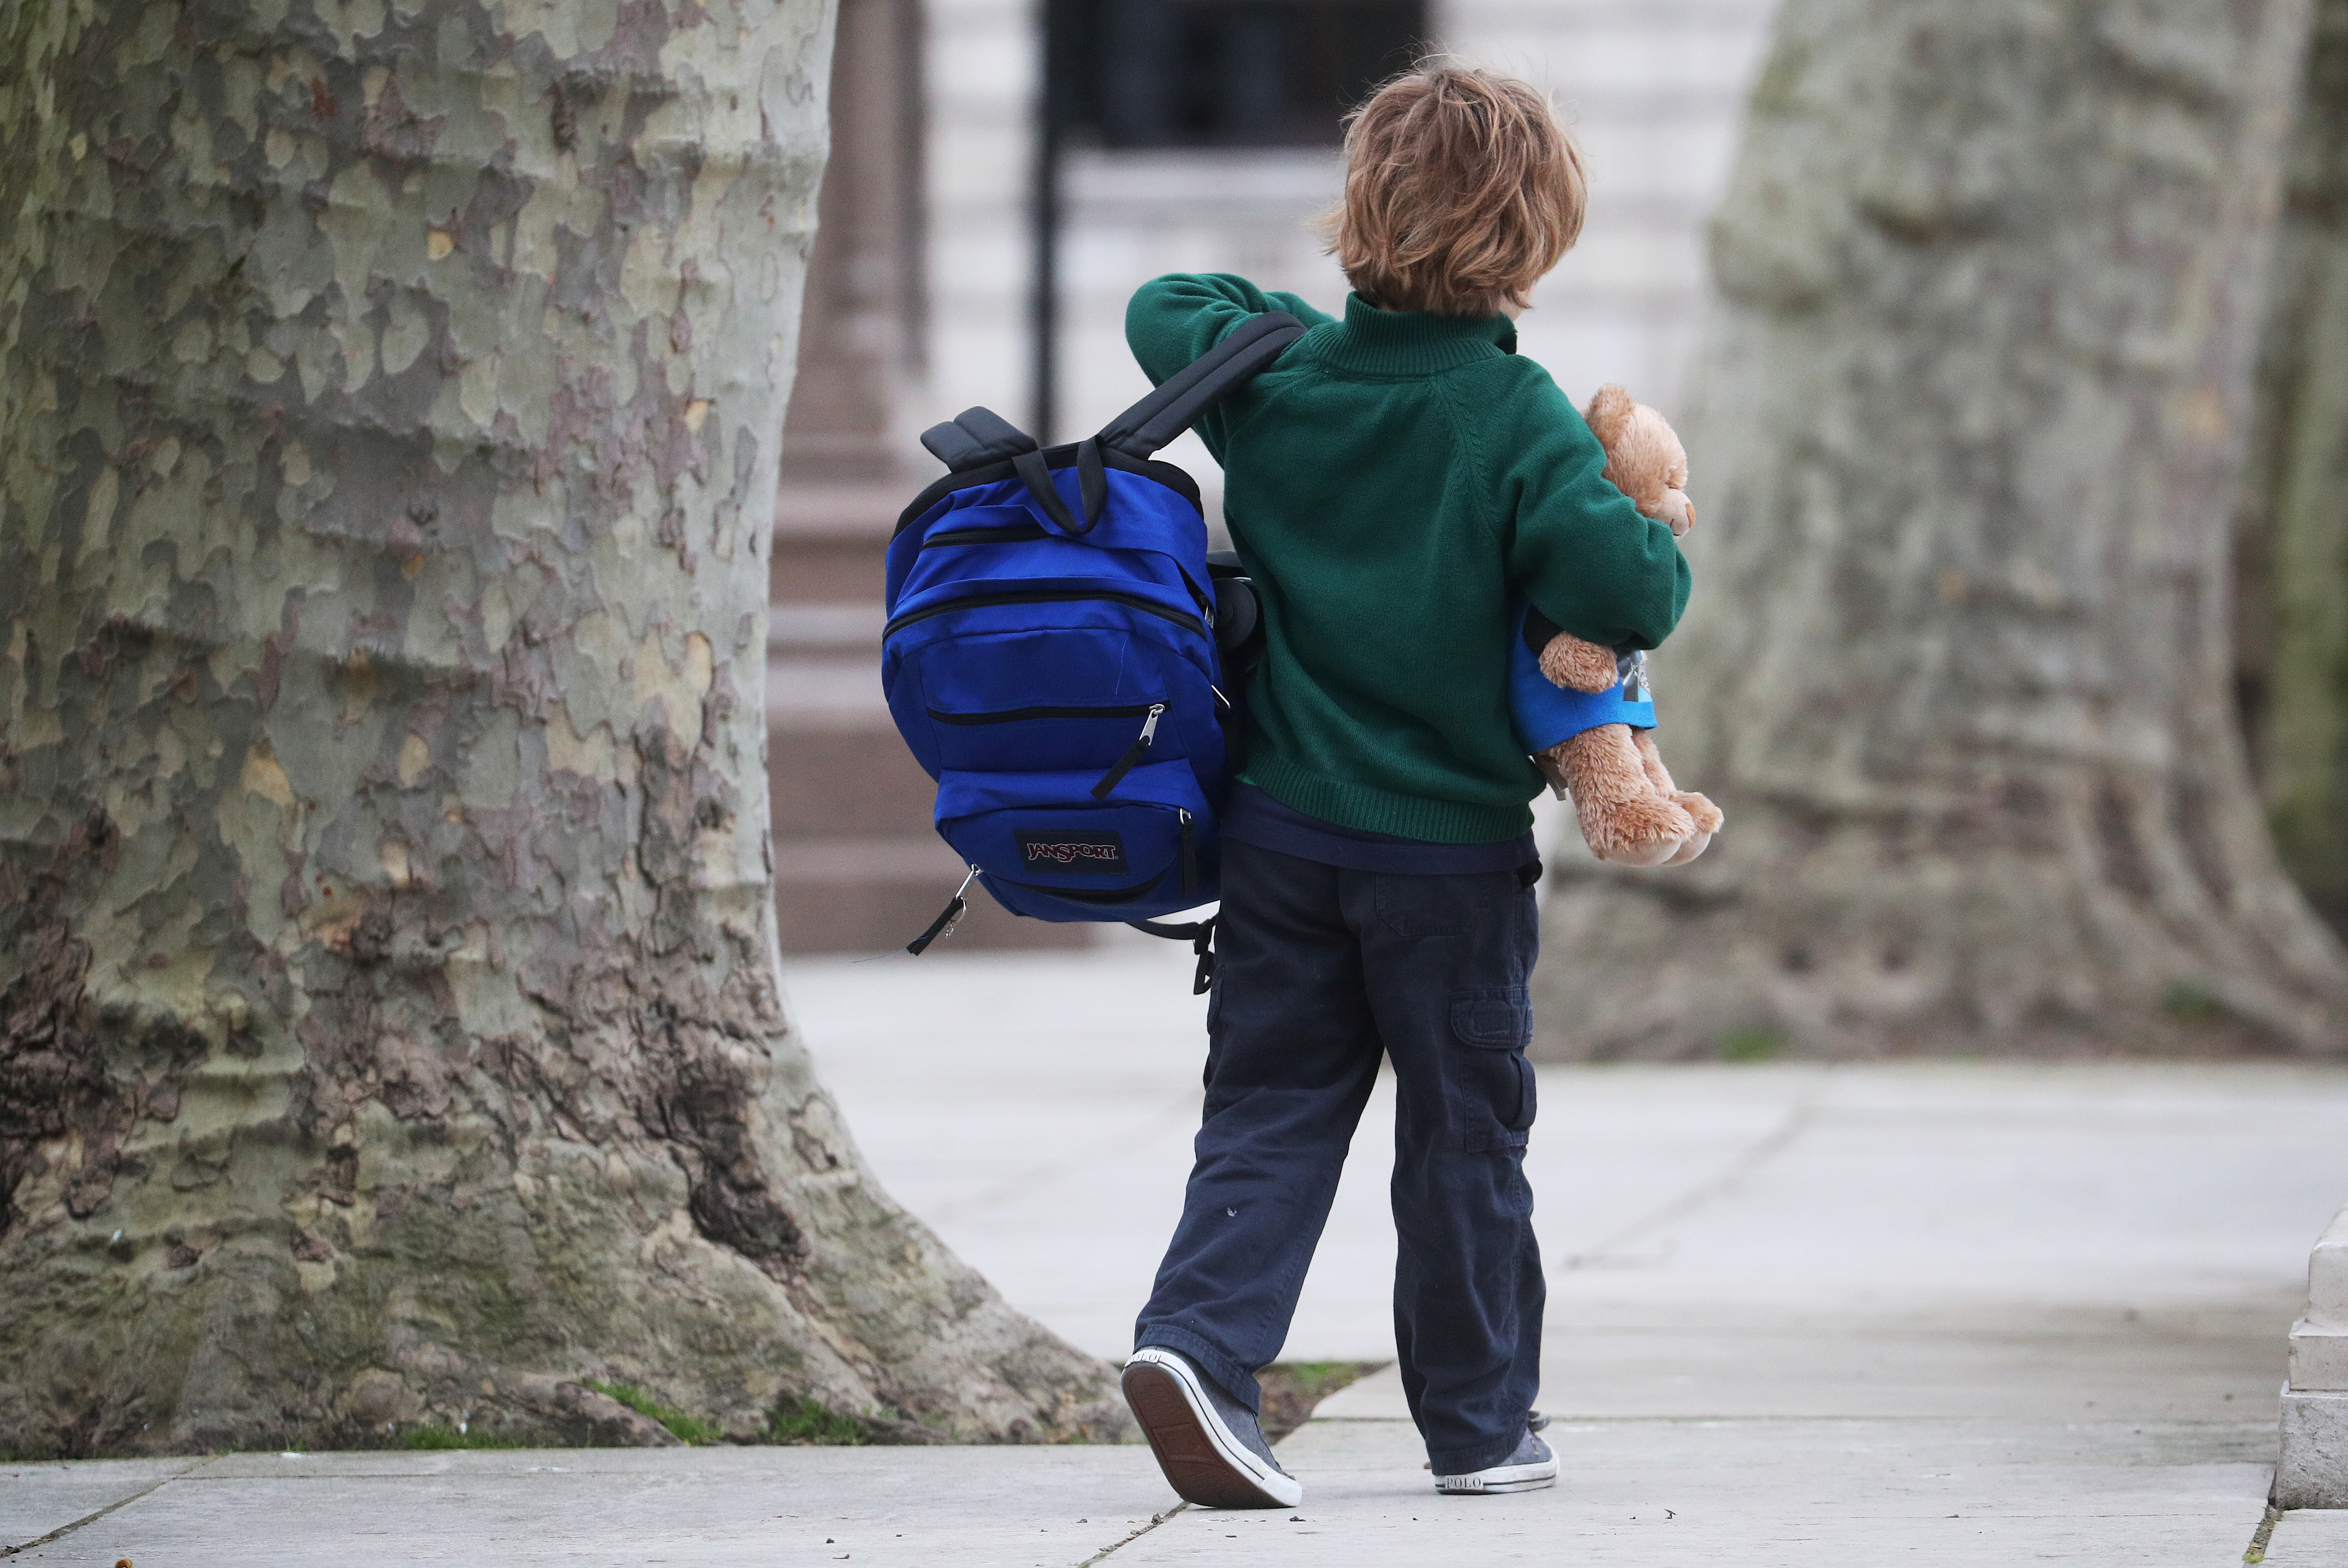 A school child walks in Westminster as the spread of the coronavirus disease (COVID-19) continues, in London, Britain, March 18, 2020. REUTERS/Hannah McKay